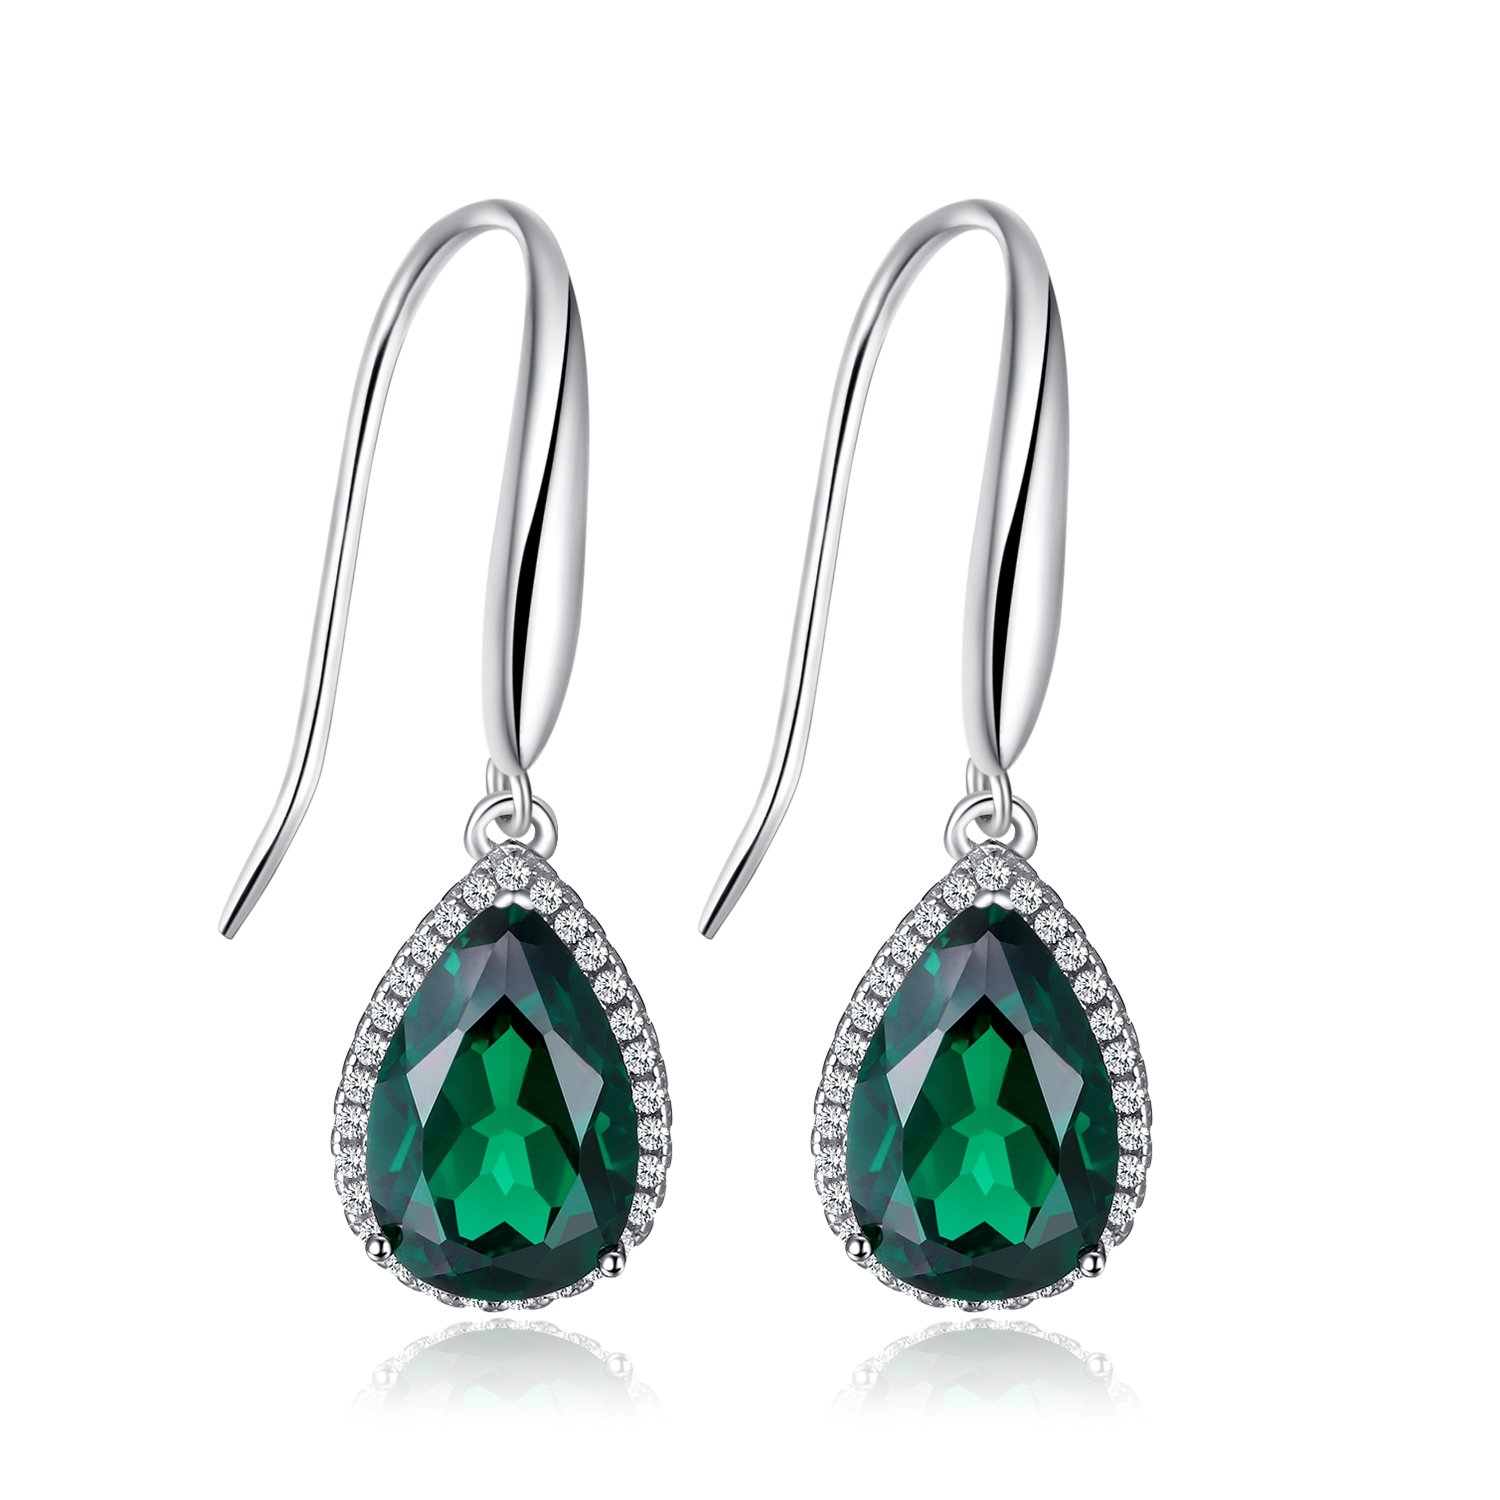 JewelryPalace Pear 5.4ct Simulated Green Nano Russian Emerald Dangle Earrings Solid 925 Sterling Silver